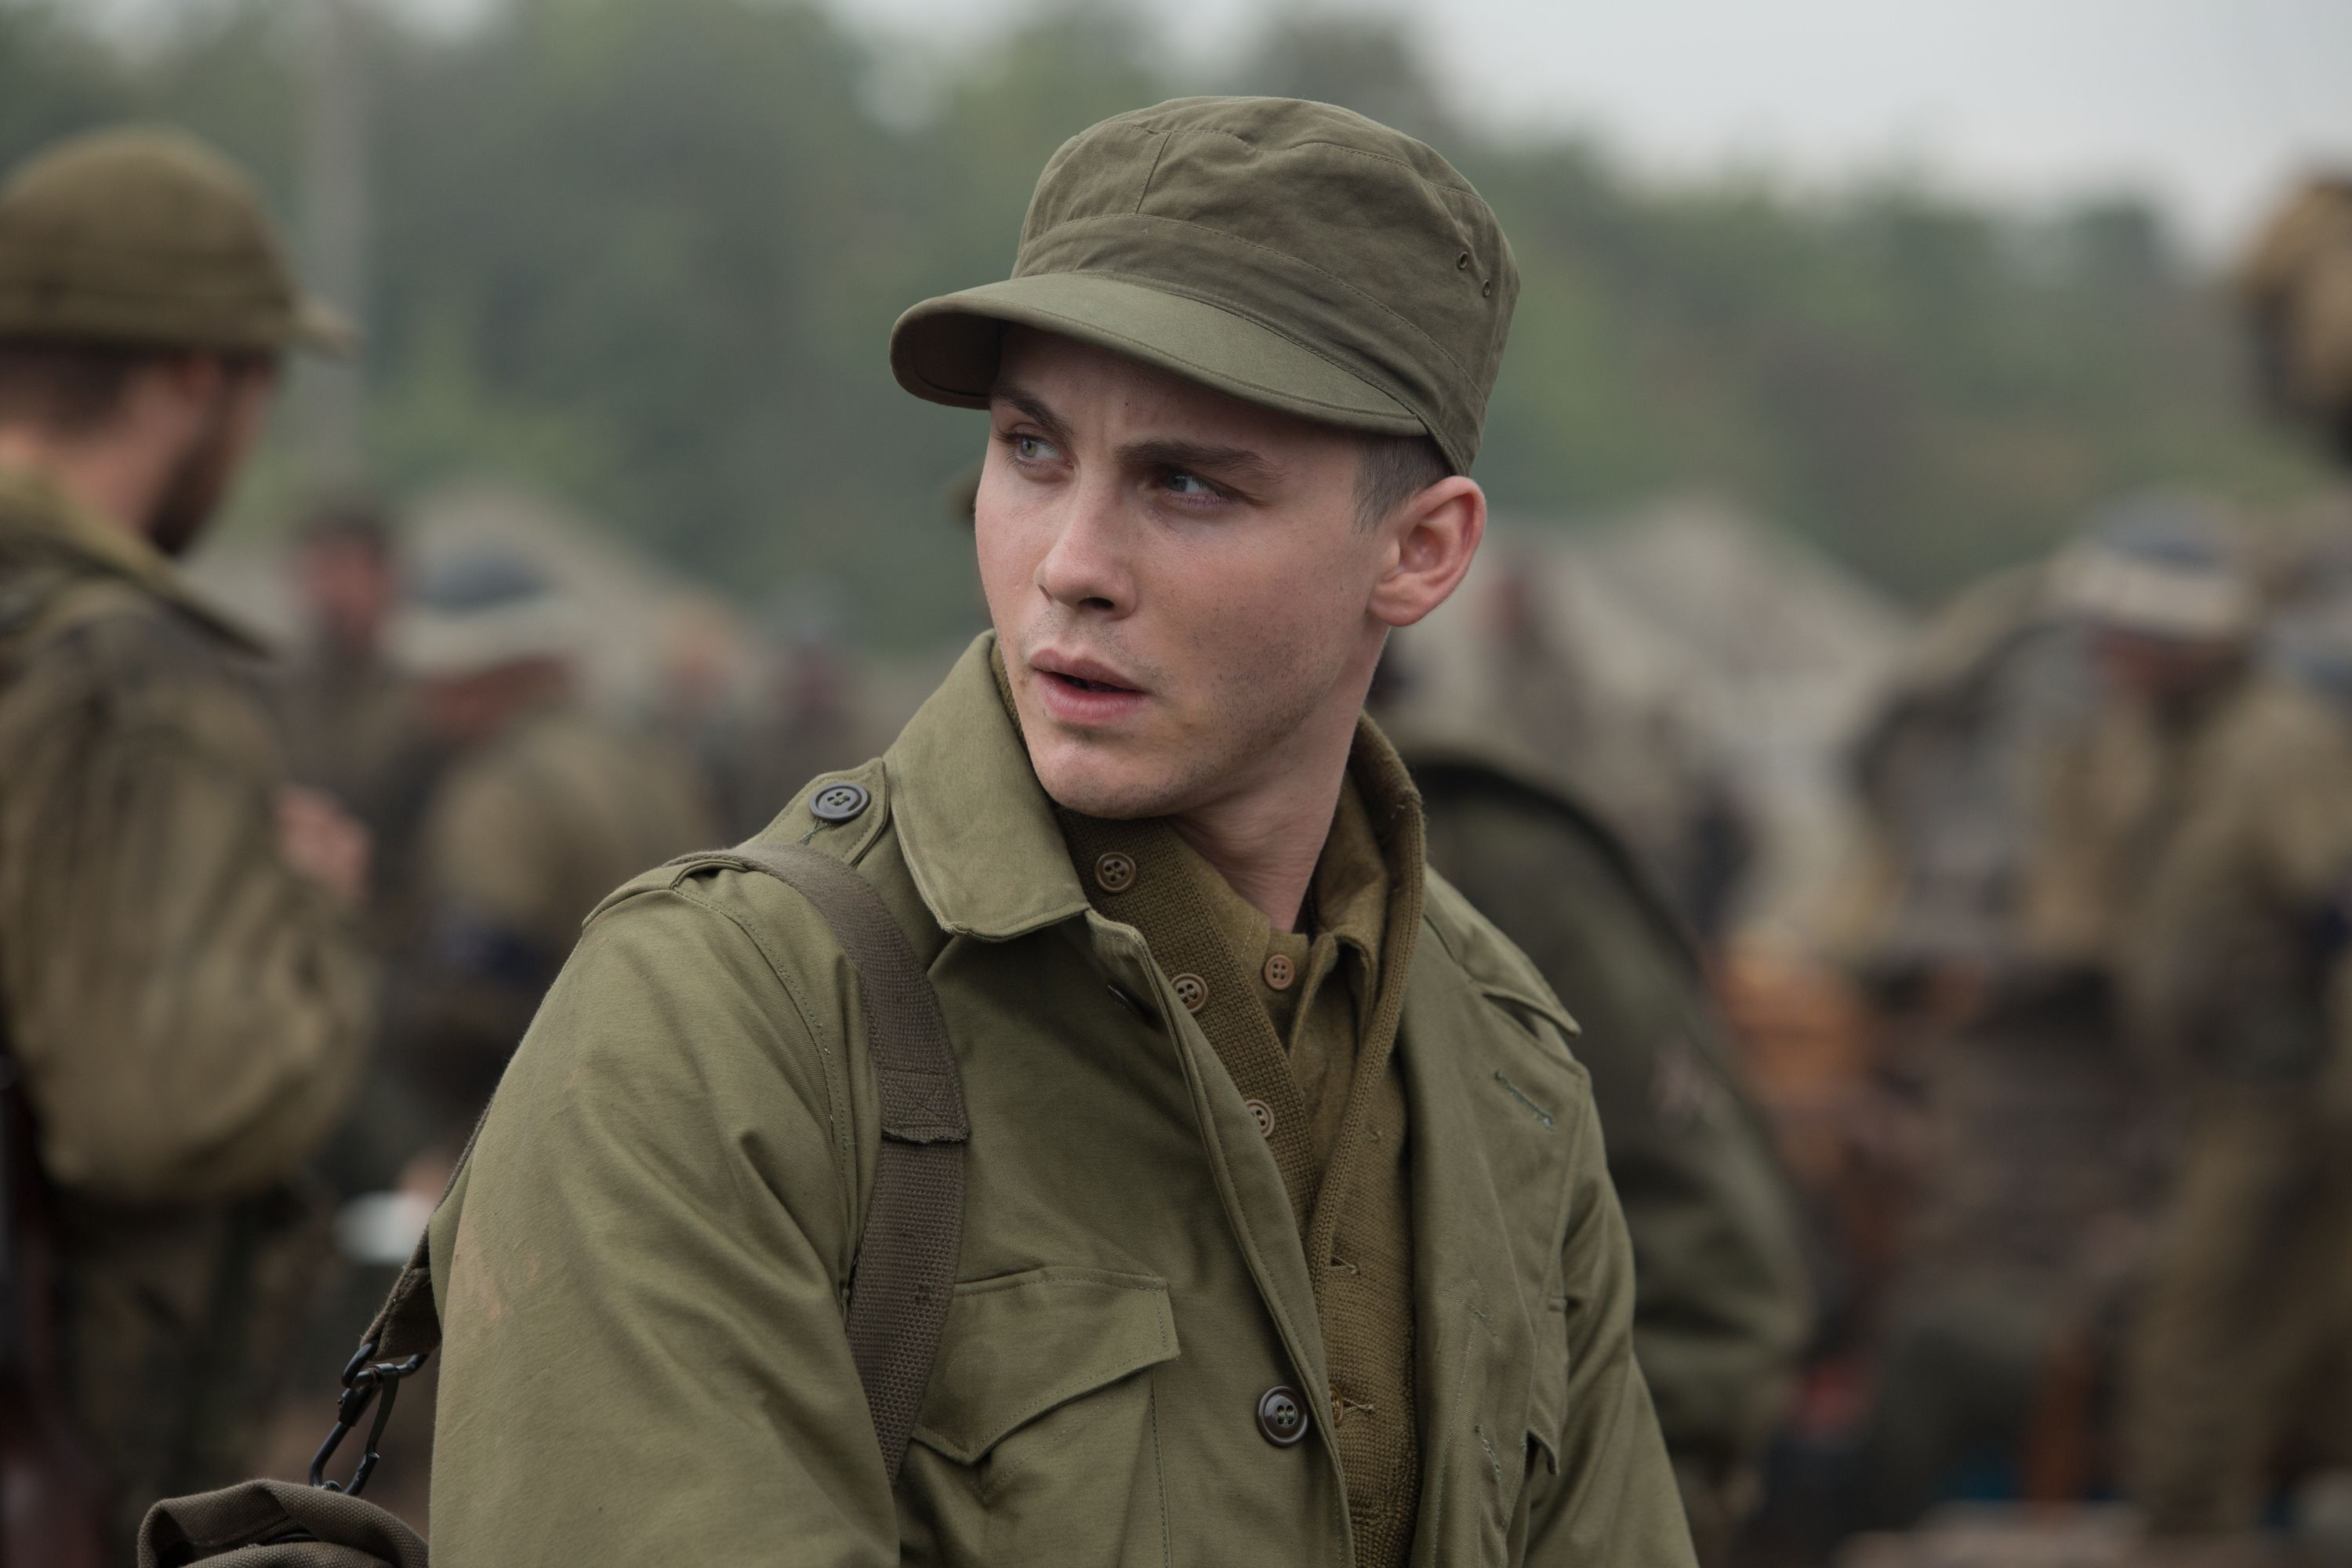 Logan Lerman Fury From David Ayers World War II Tank Film - New official trailer fury starring brad pitt